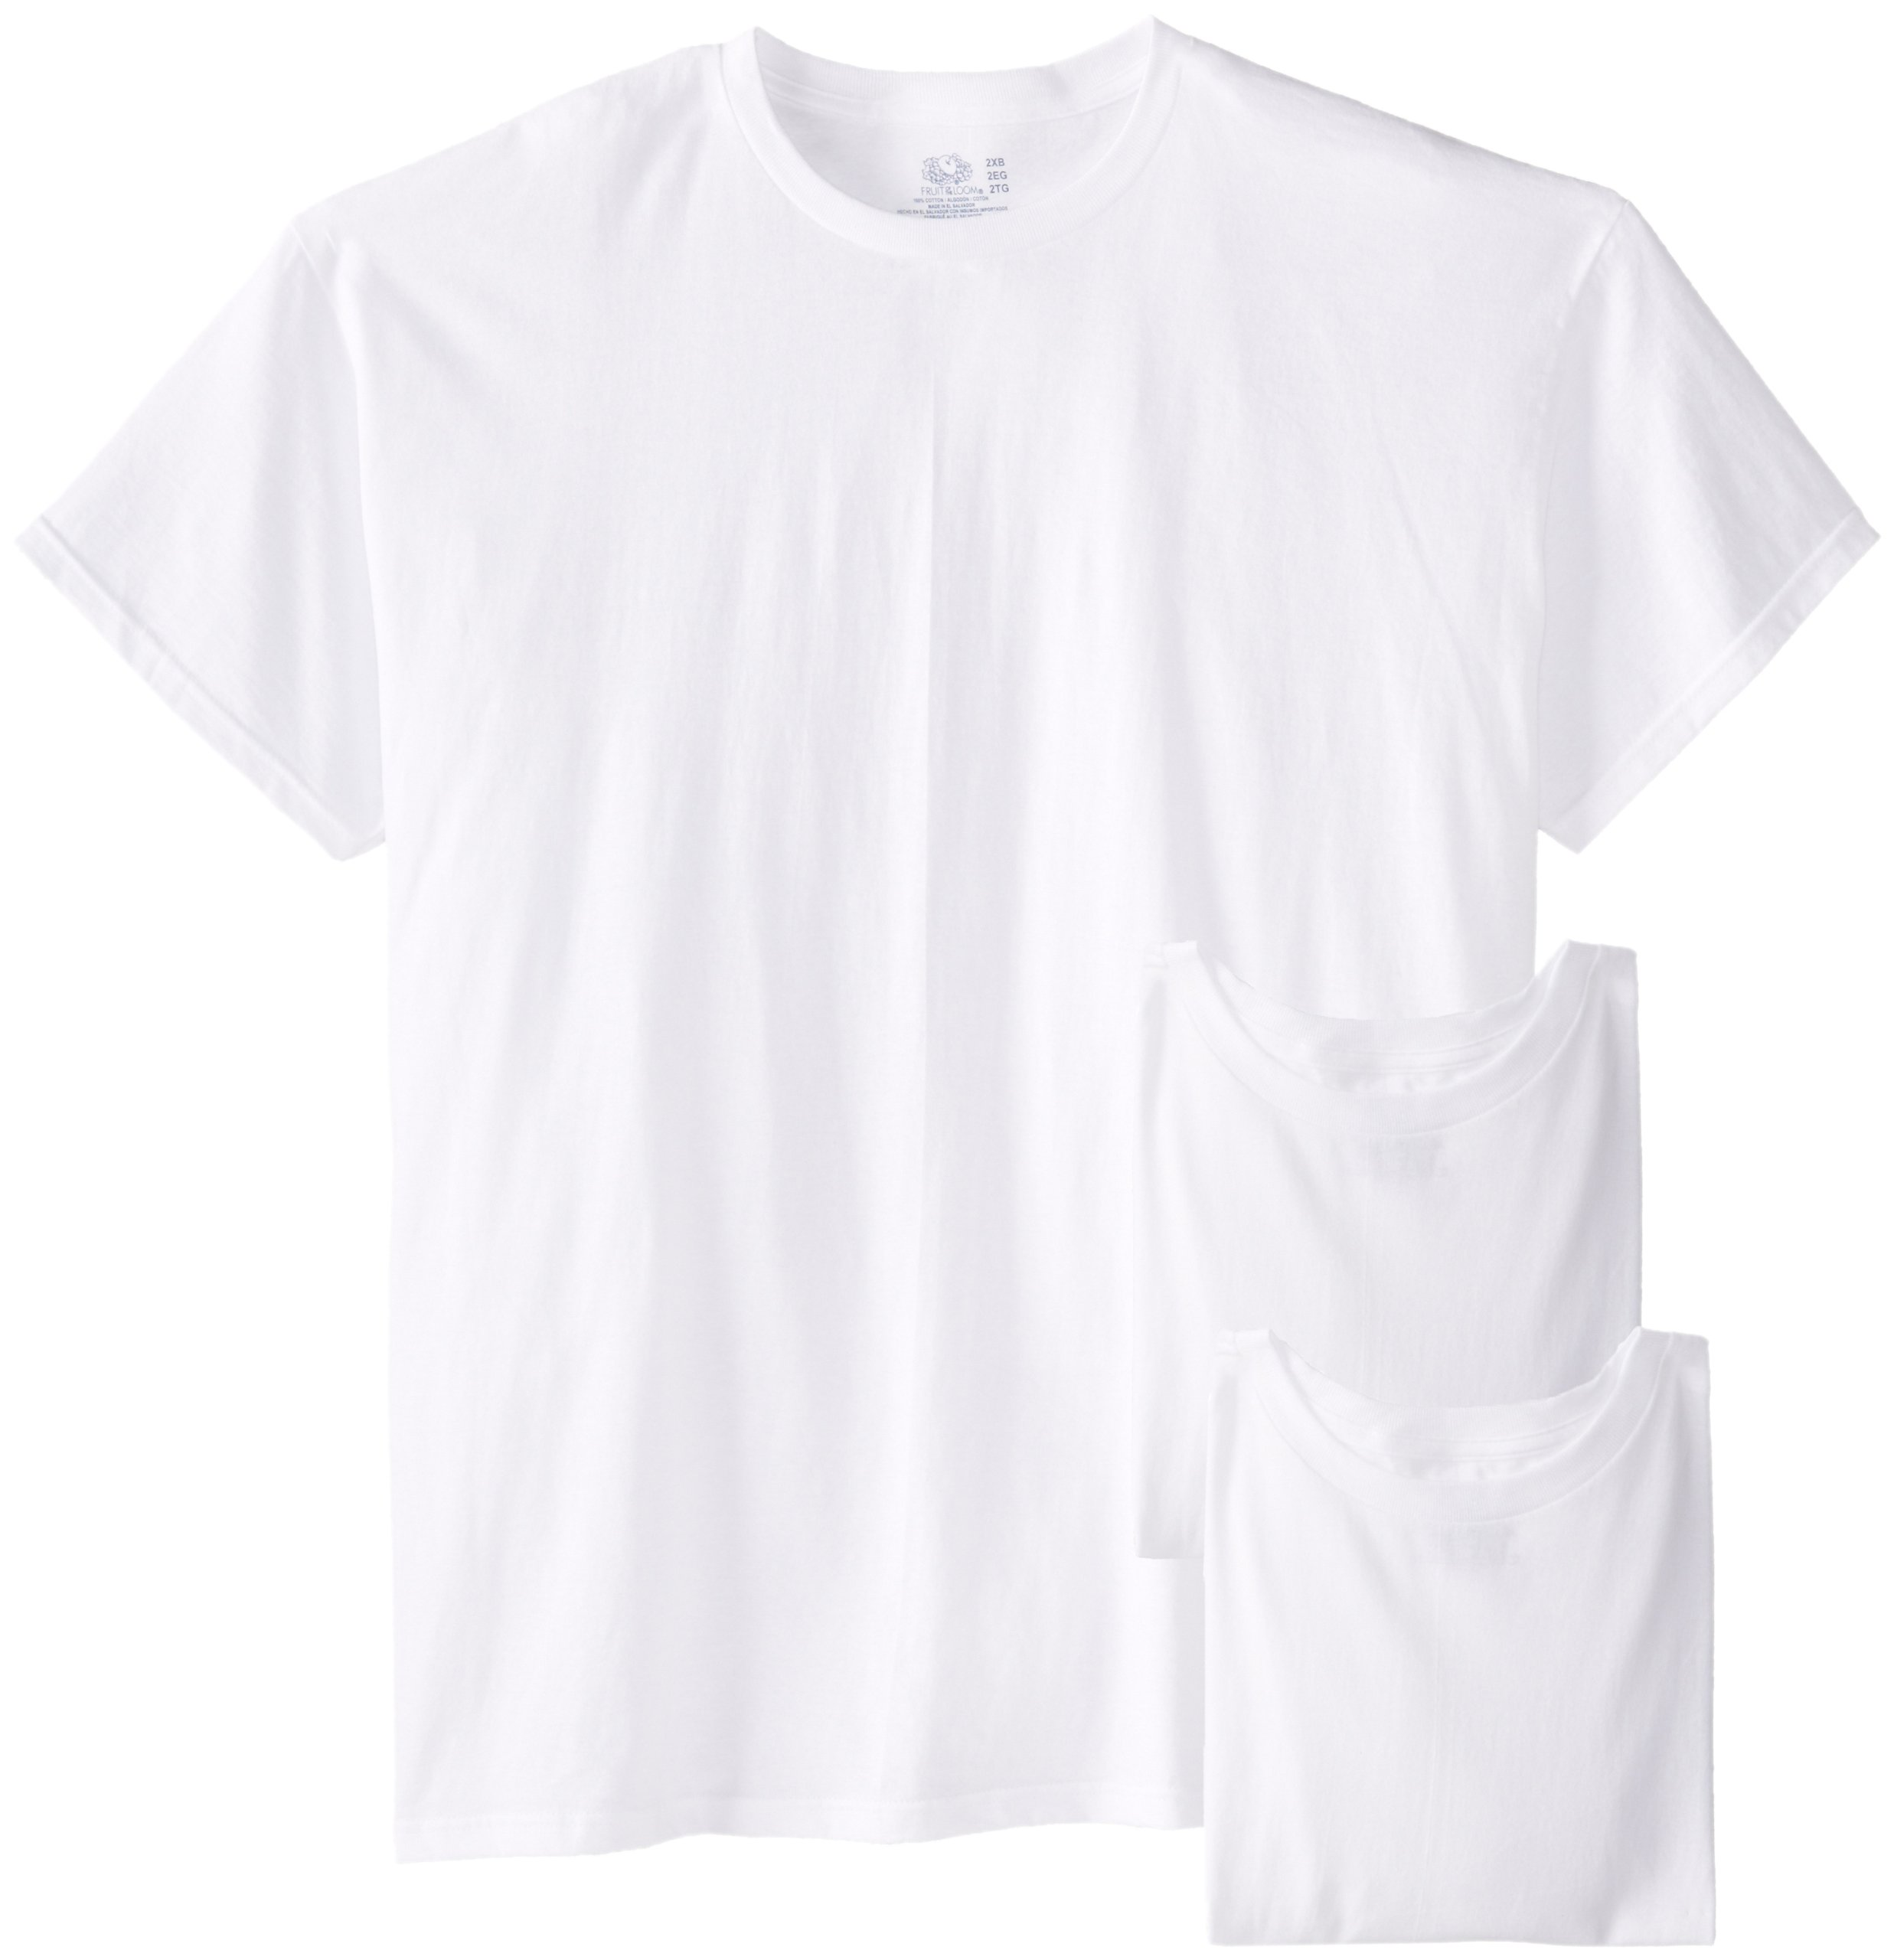 Fruit of the Loom Men's 3-Pack Big Size Crew T-Shirt, White, 3XB by Fruit of the Loom